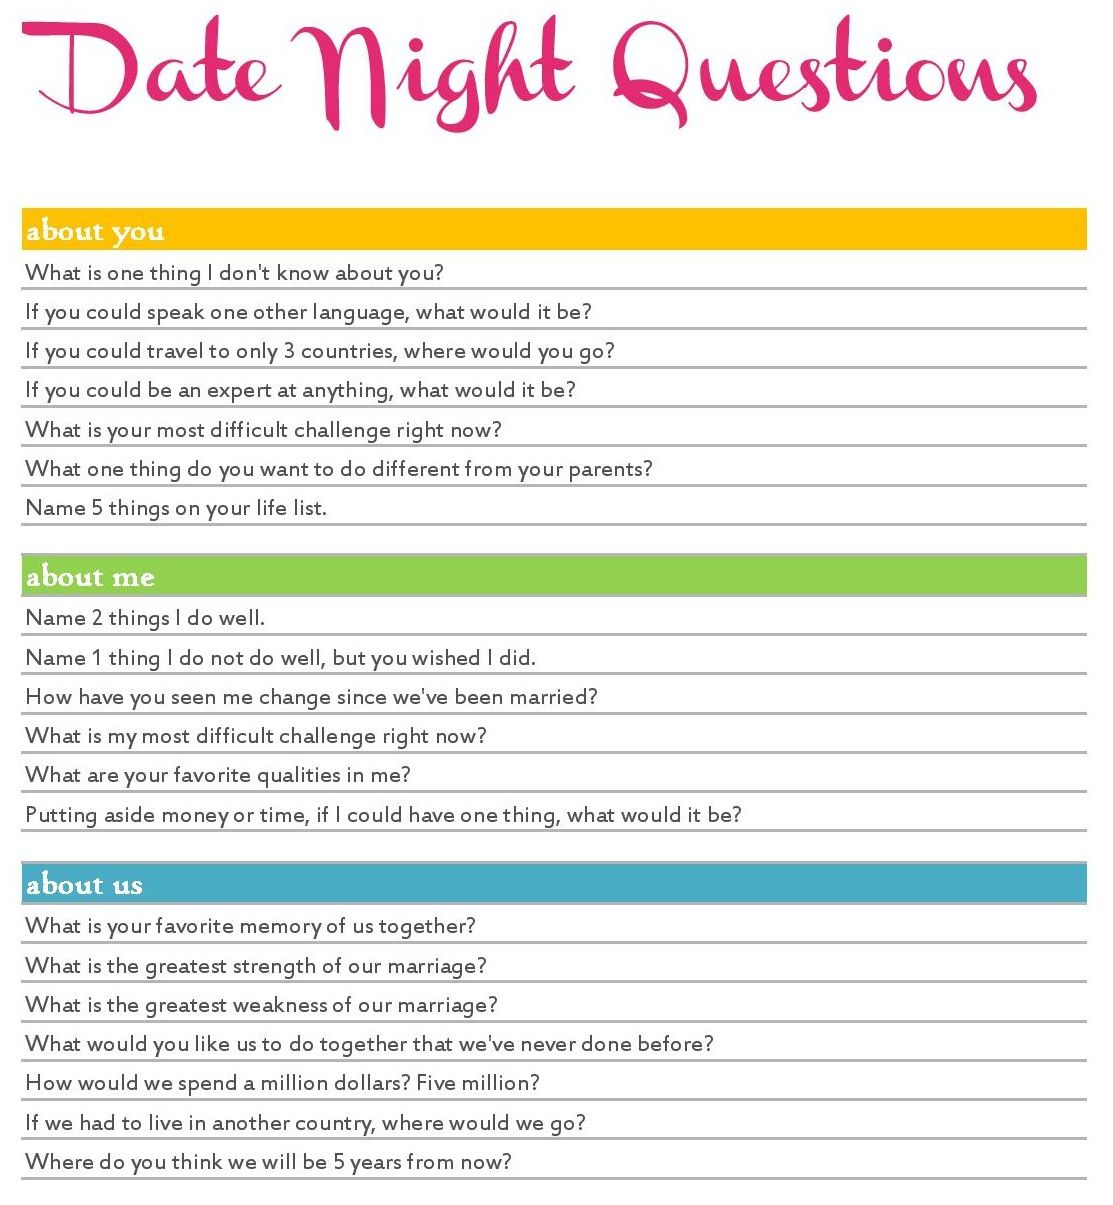 31 Days 20 Date Night Questions Day 12 Date Night